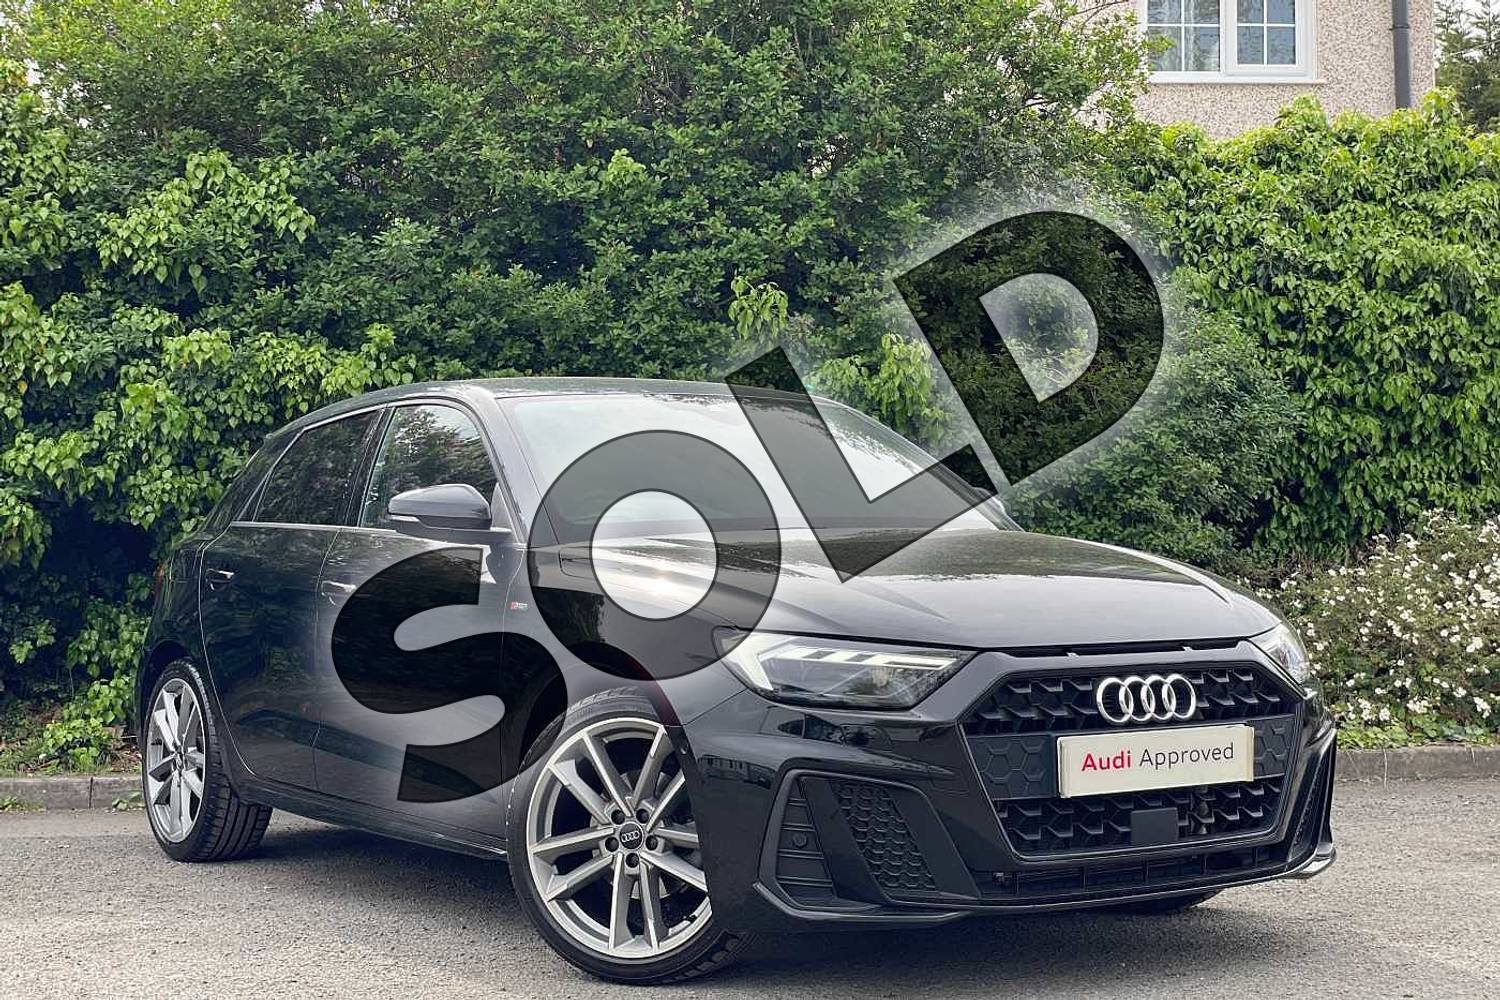 2020 Audi A1 Sportback 35 TFSI Vorsprung 5dr S Tronic in Myth Black Metallic at Coventry Audi